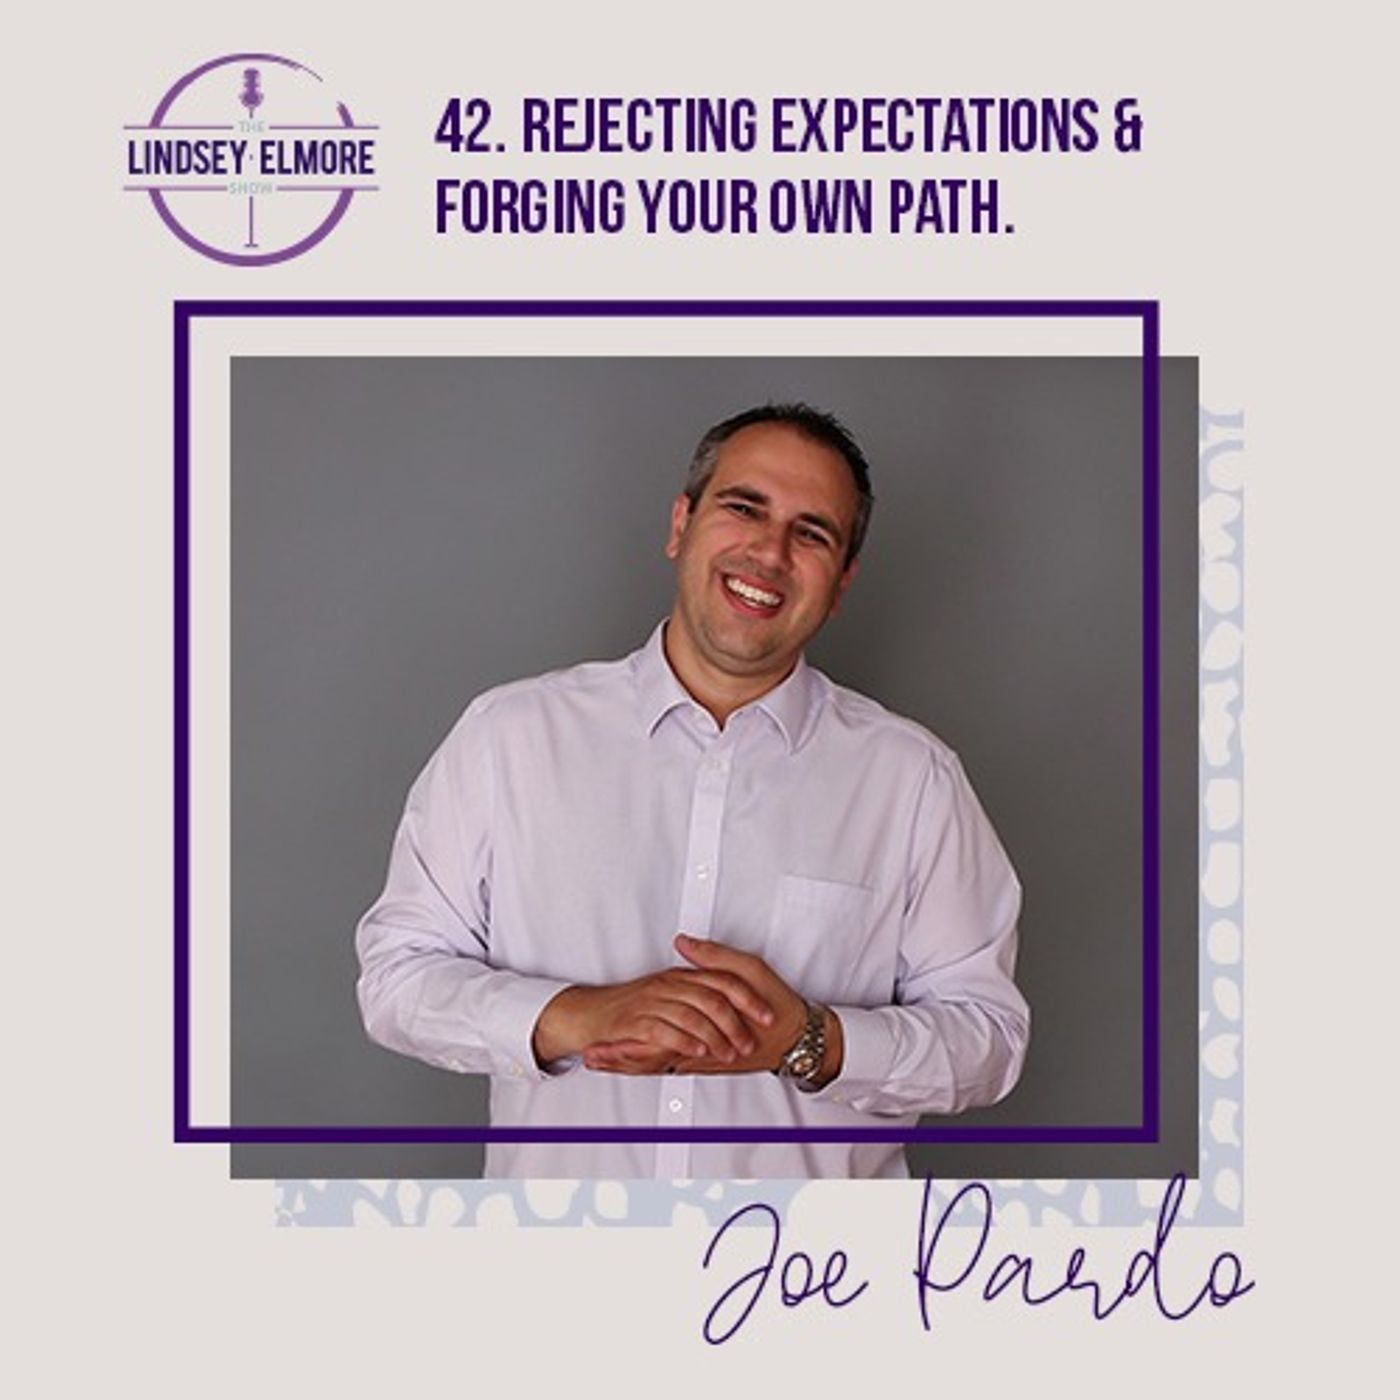 Rejecting expectations and forging your own path. An interview with Joe Pardo.